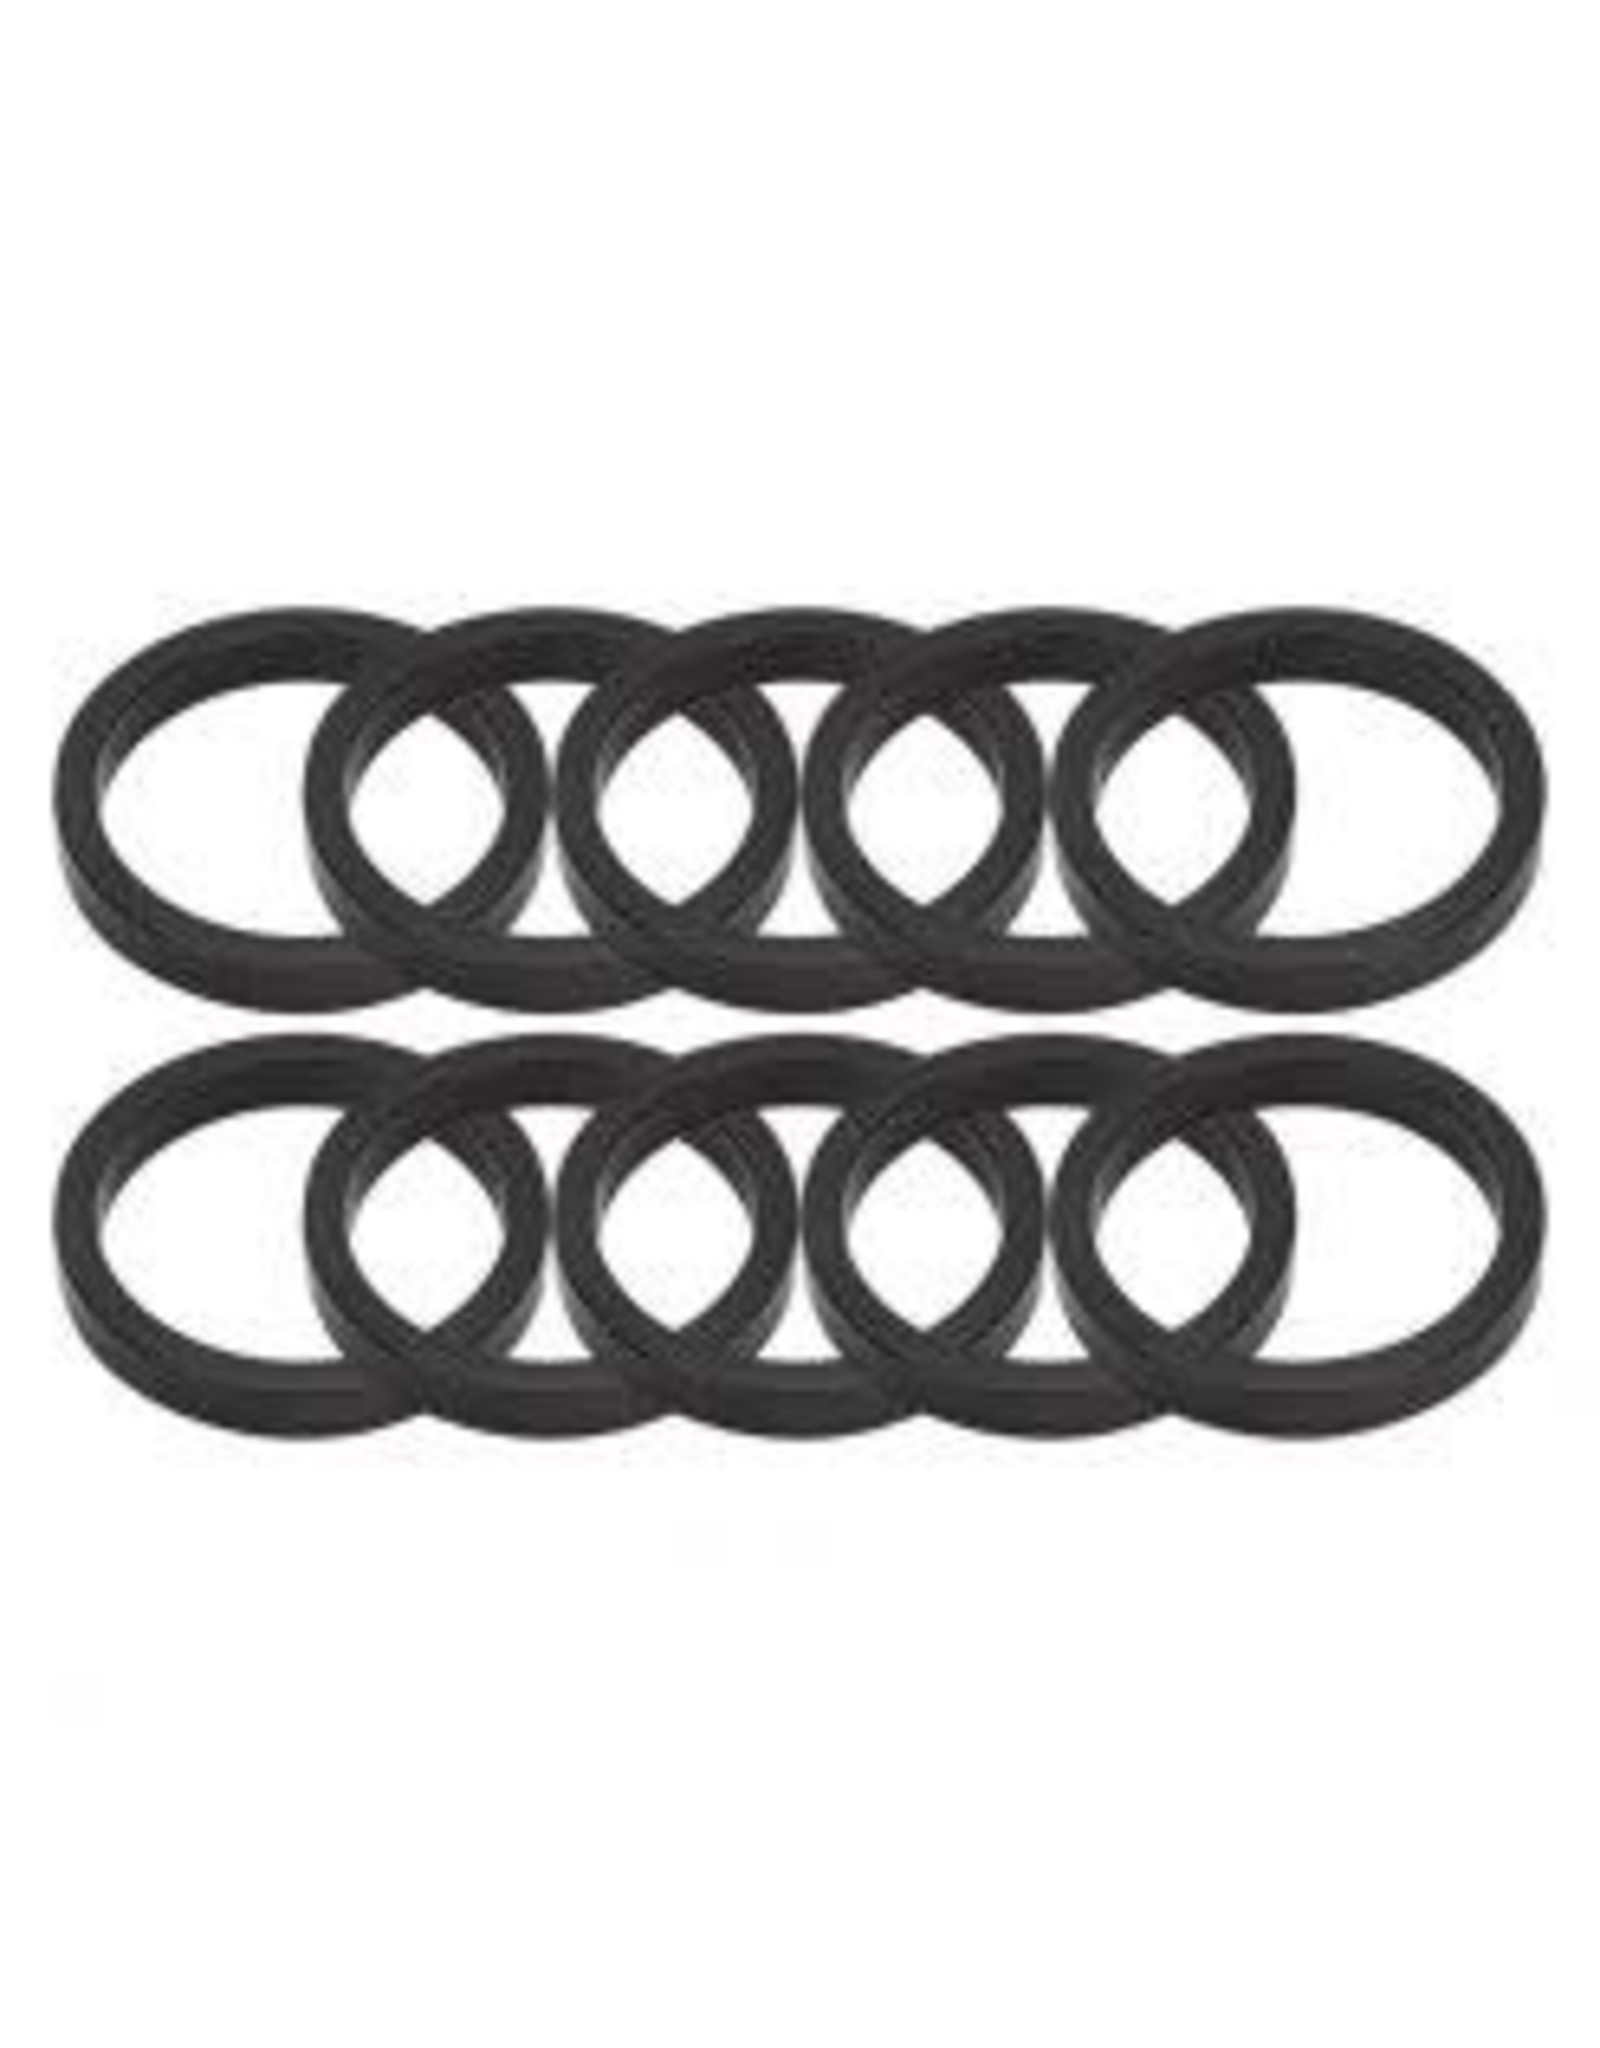 Headset Spacer Alloy 5mmx1-1/8 Blk Bag of 10 single